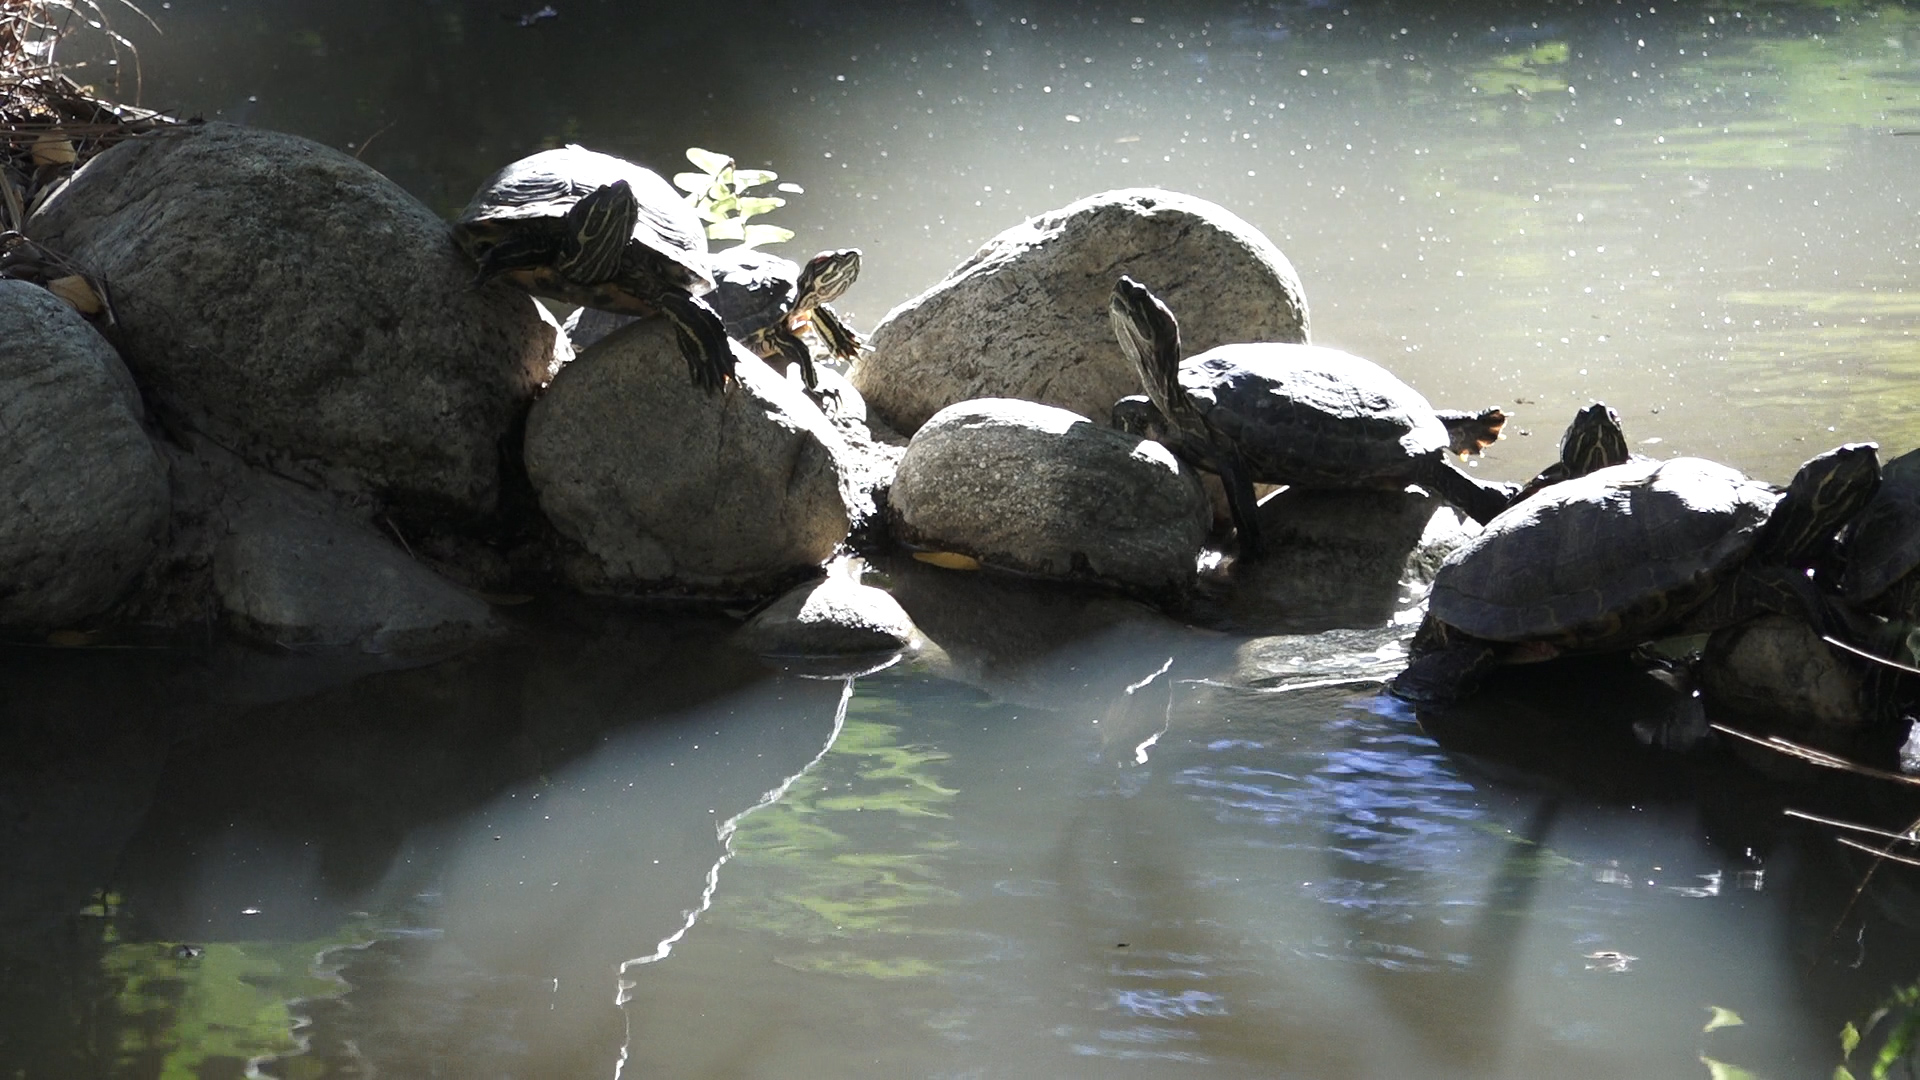 The red-eared slider turtles bask in the sun at the University of California Los Angeles Mildred E. Mathias Botanical Garden. These turtles are not natives of California.